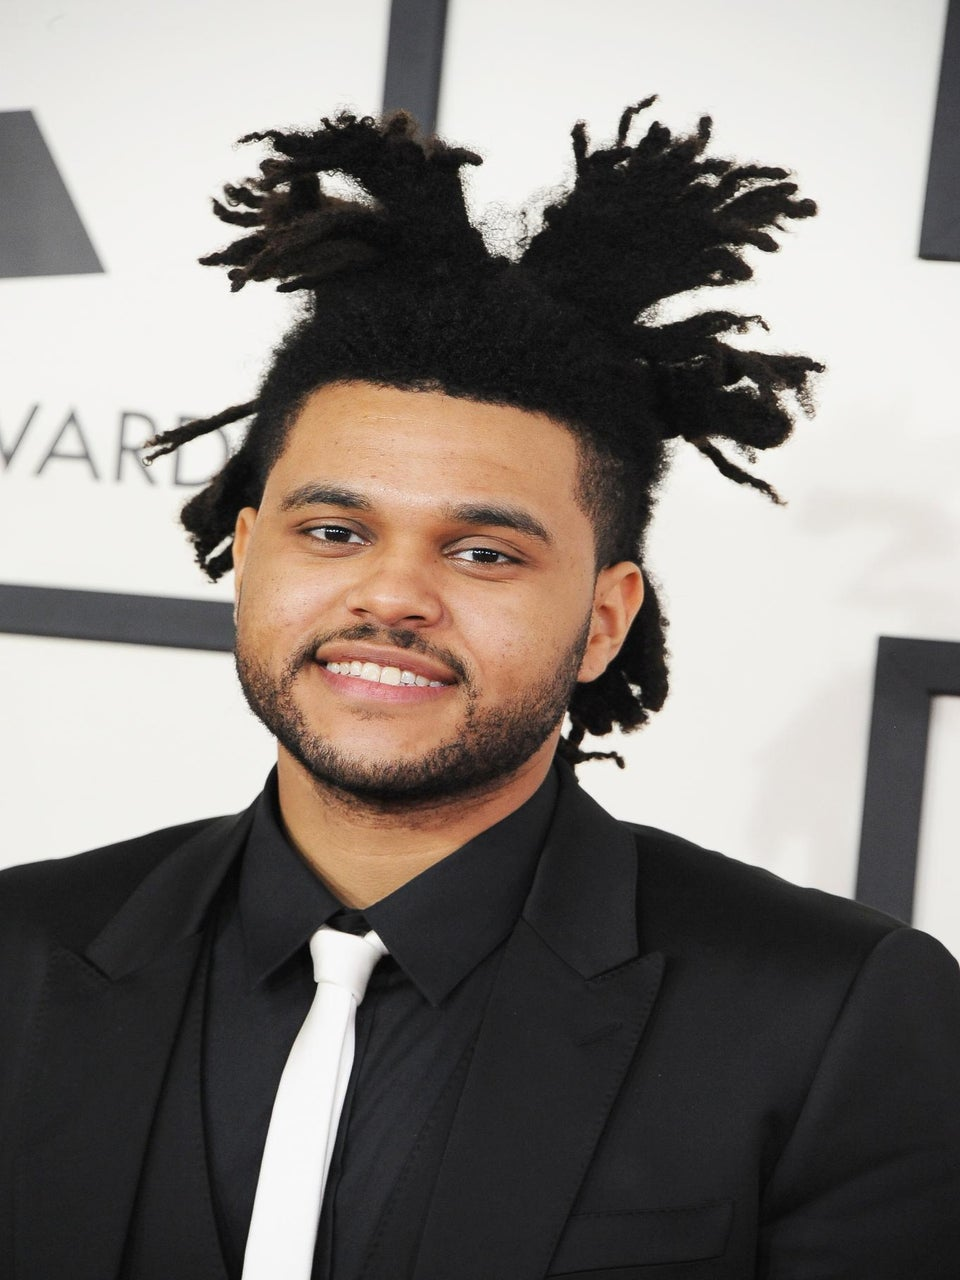 The Weeknd Drops Out of Rihanna's ANTI Tour